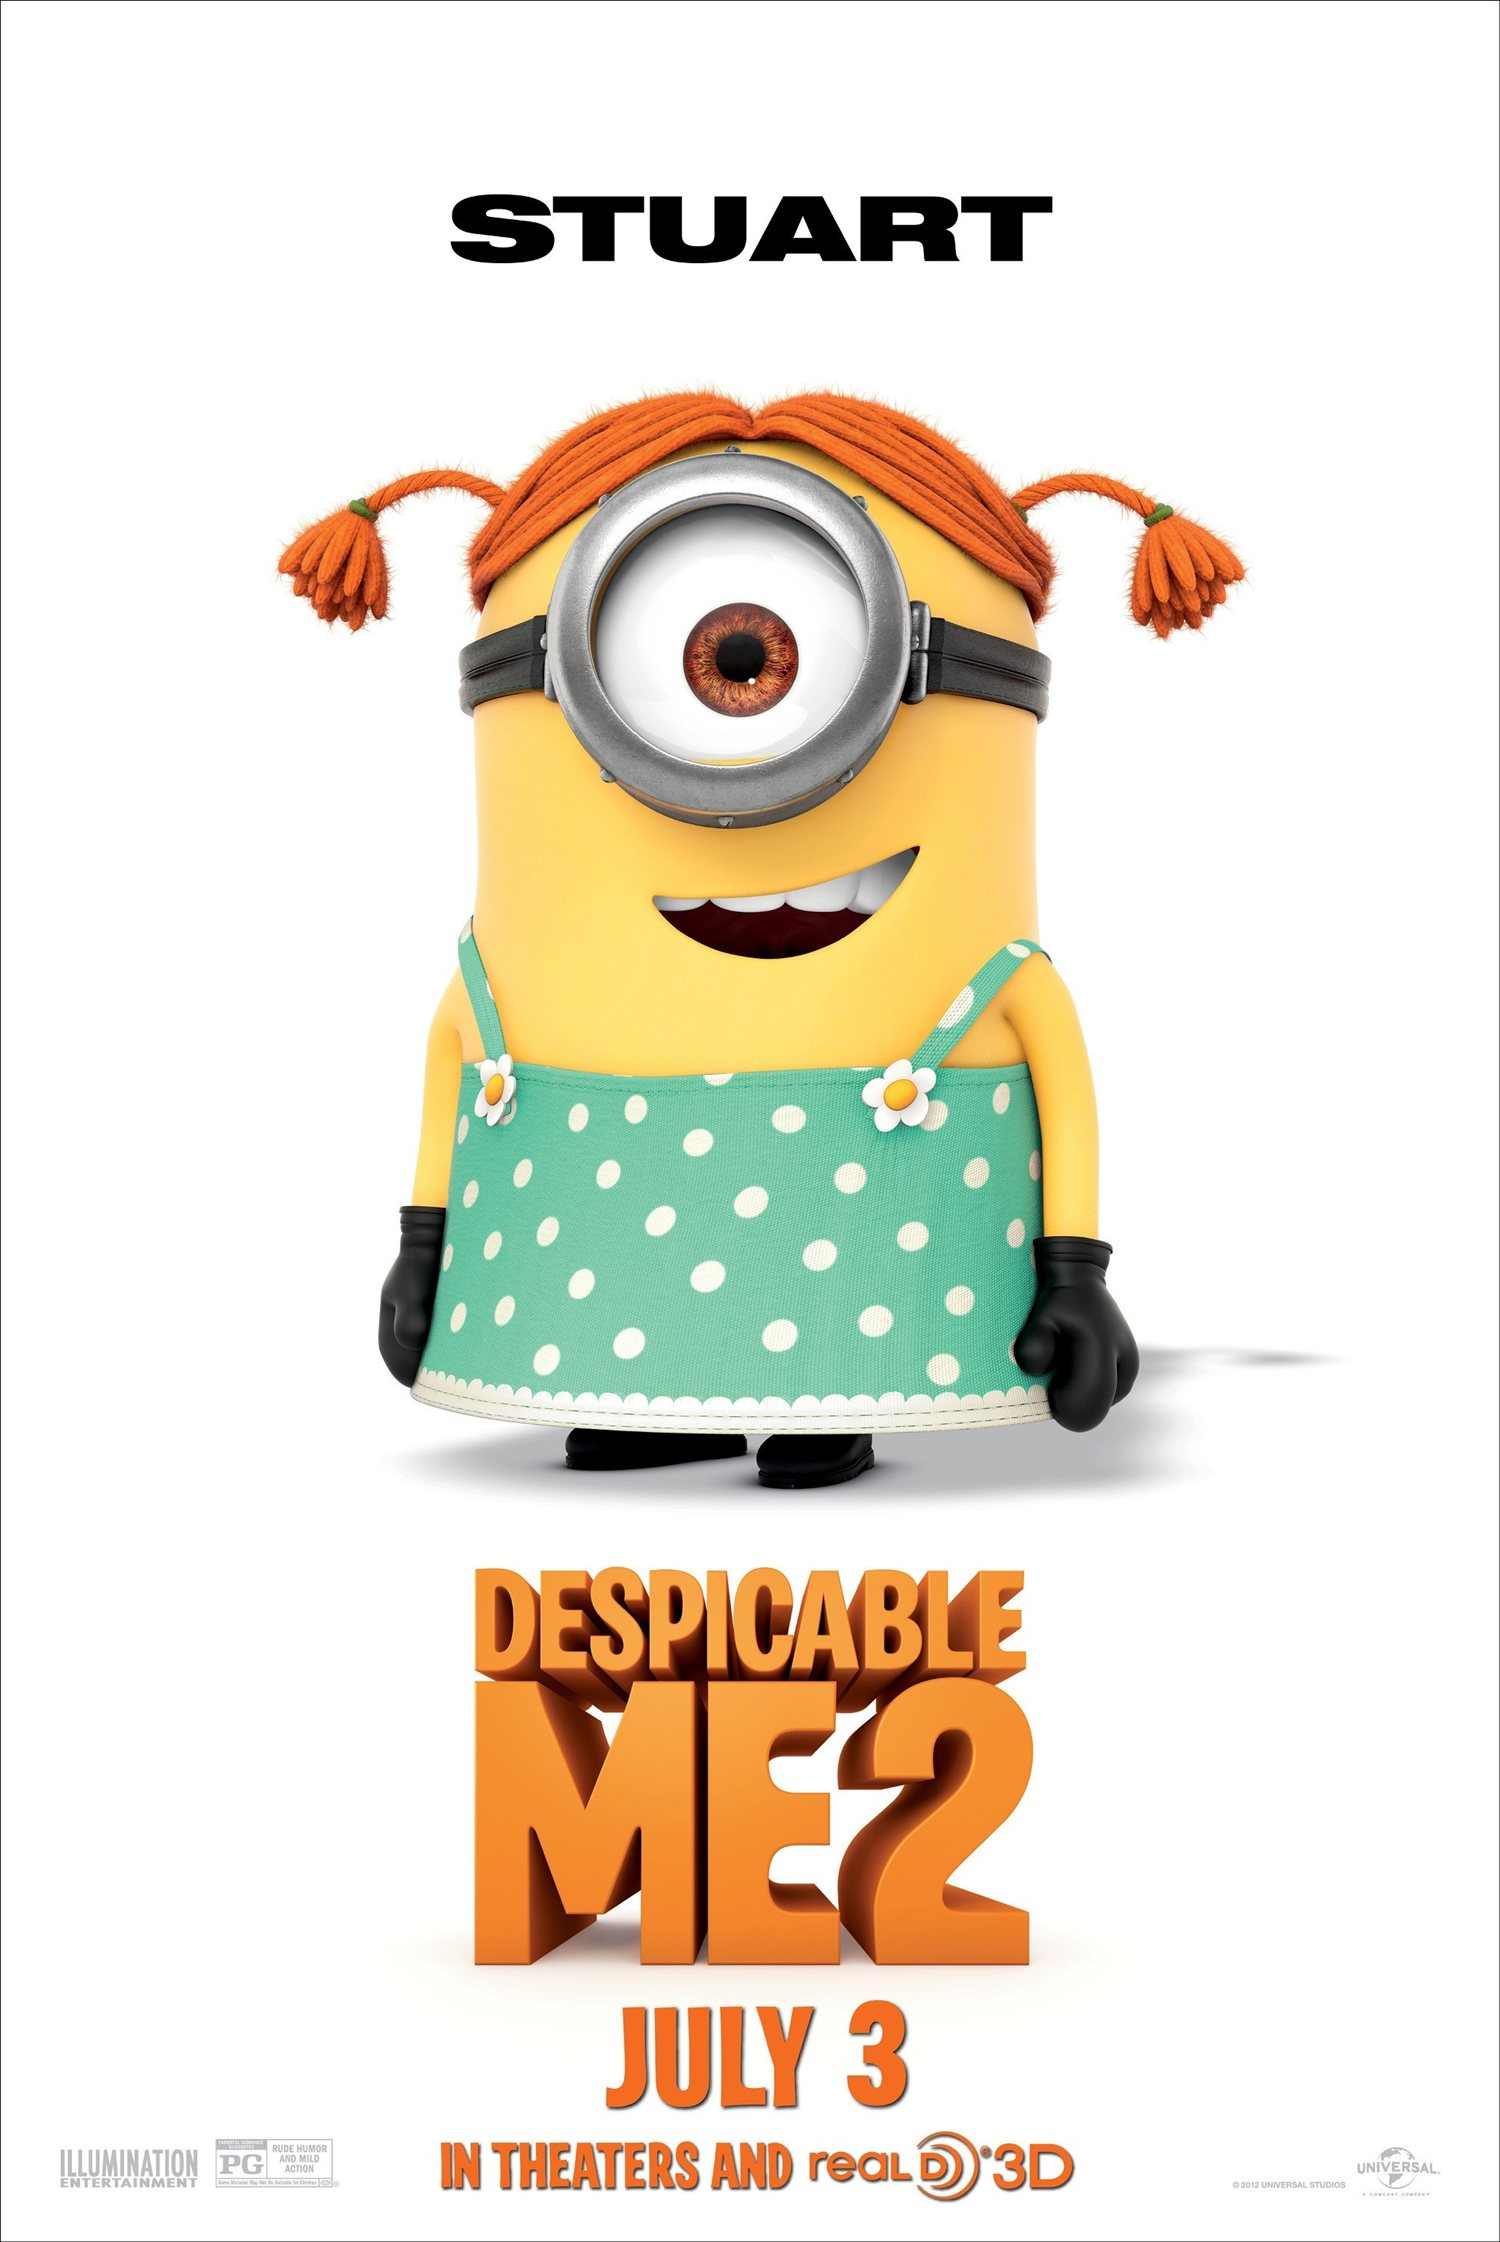 DESPICABLE ME 2 Stuart The Minion Poster